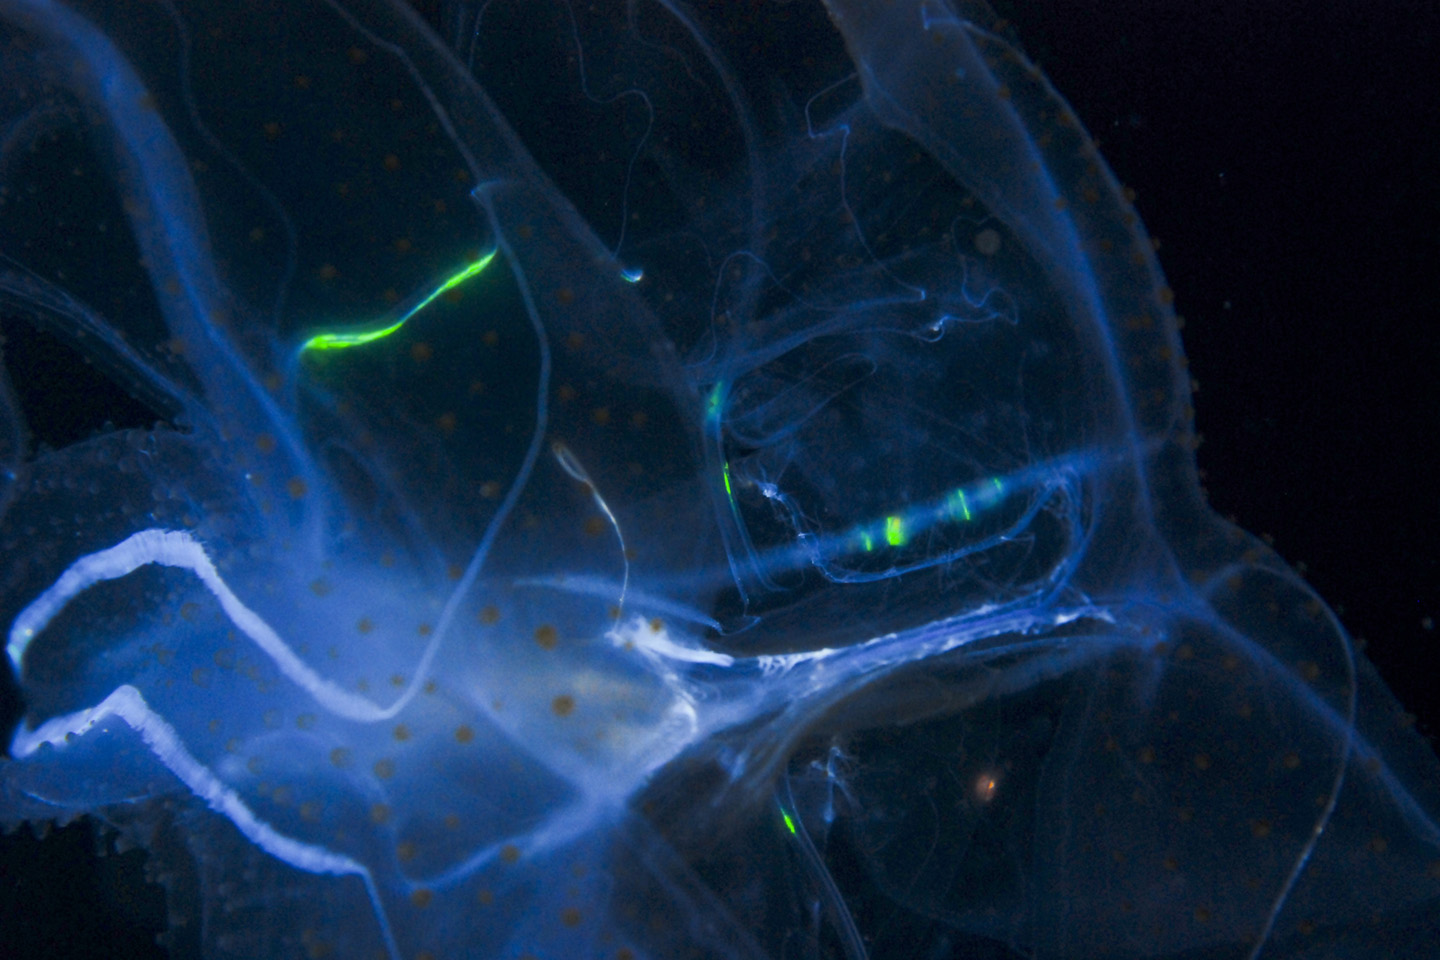 Can we harness bioluminescent light from organisms for everyday lighting & other practical purposes